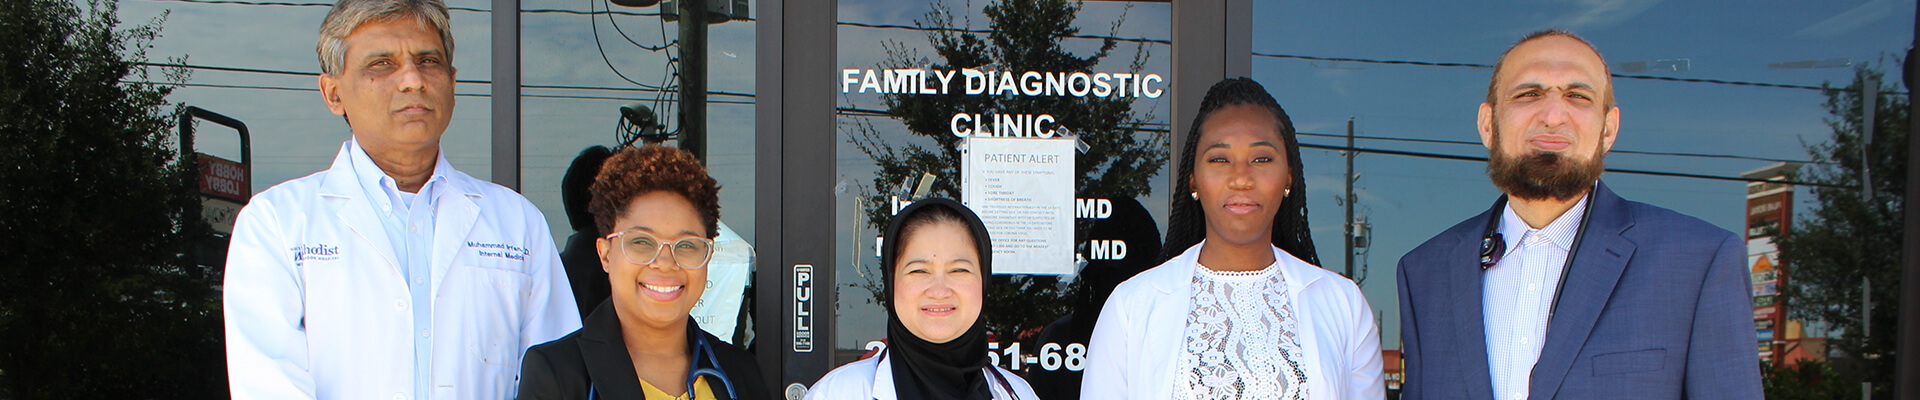 Family Diagnostic Clinic